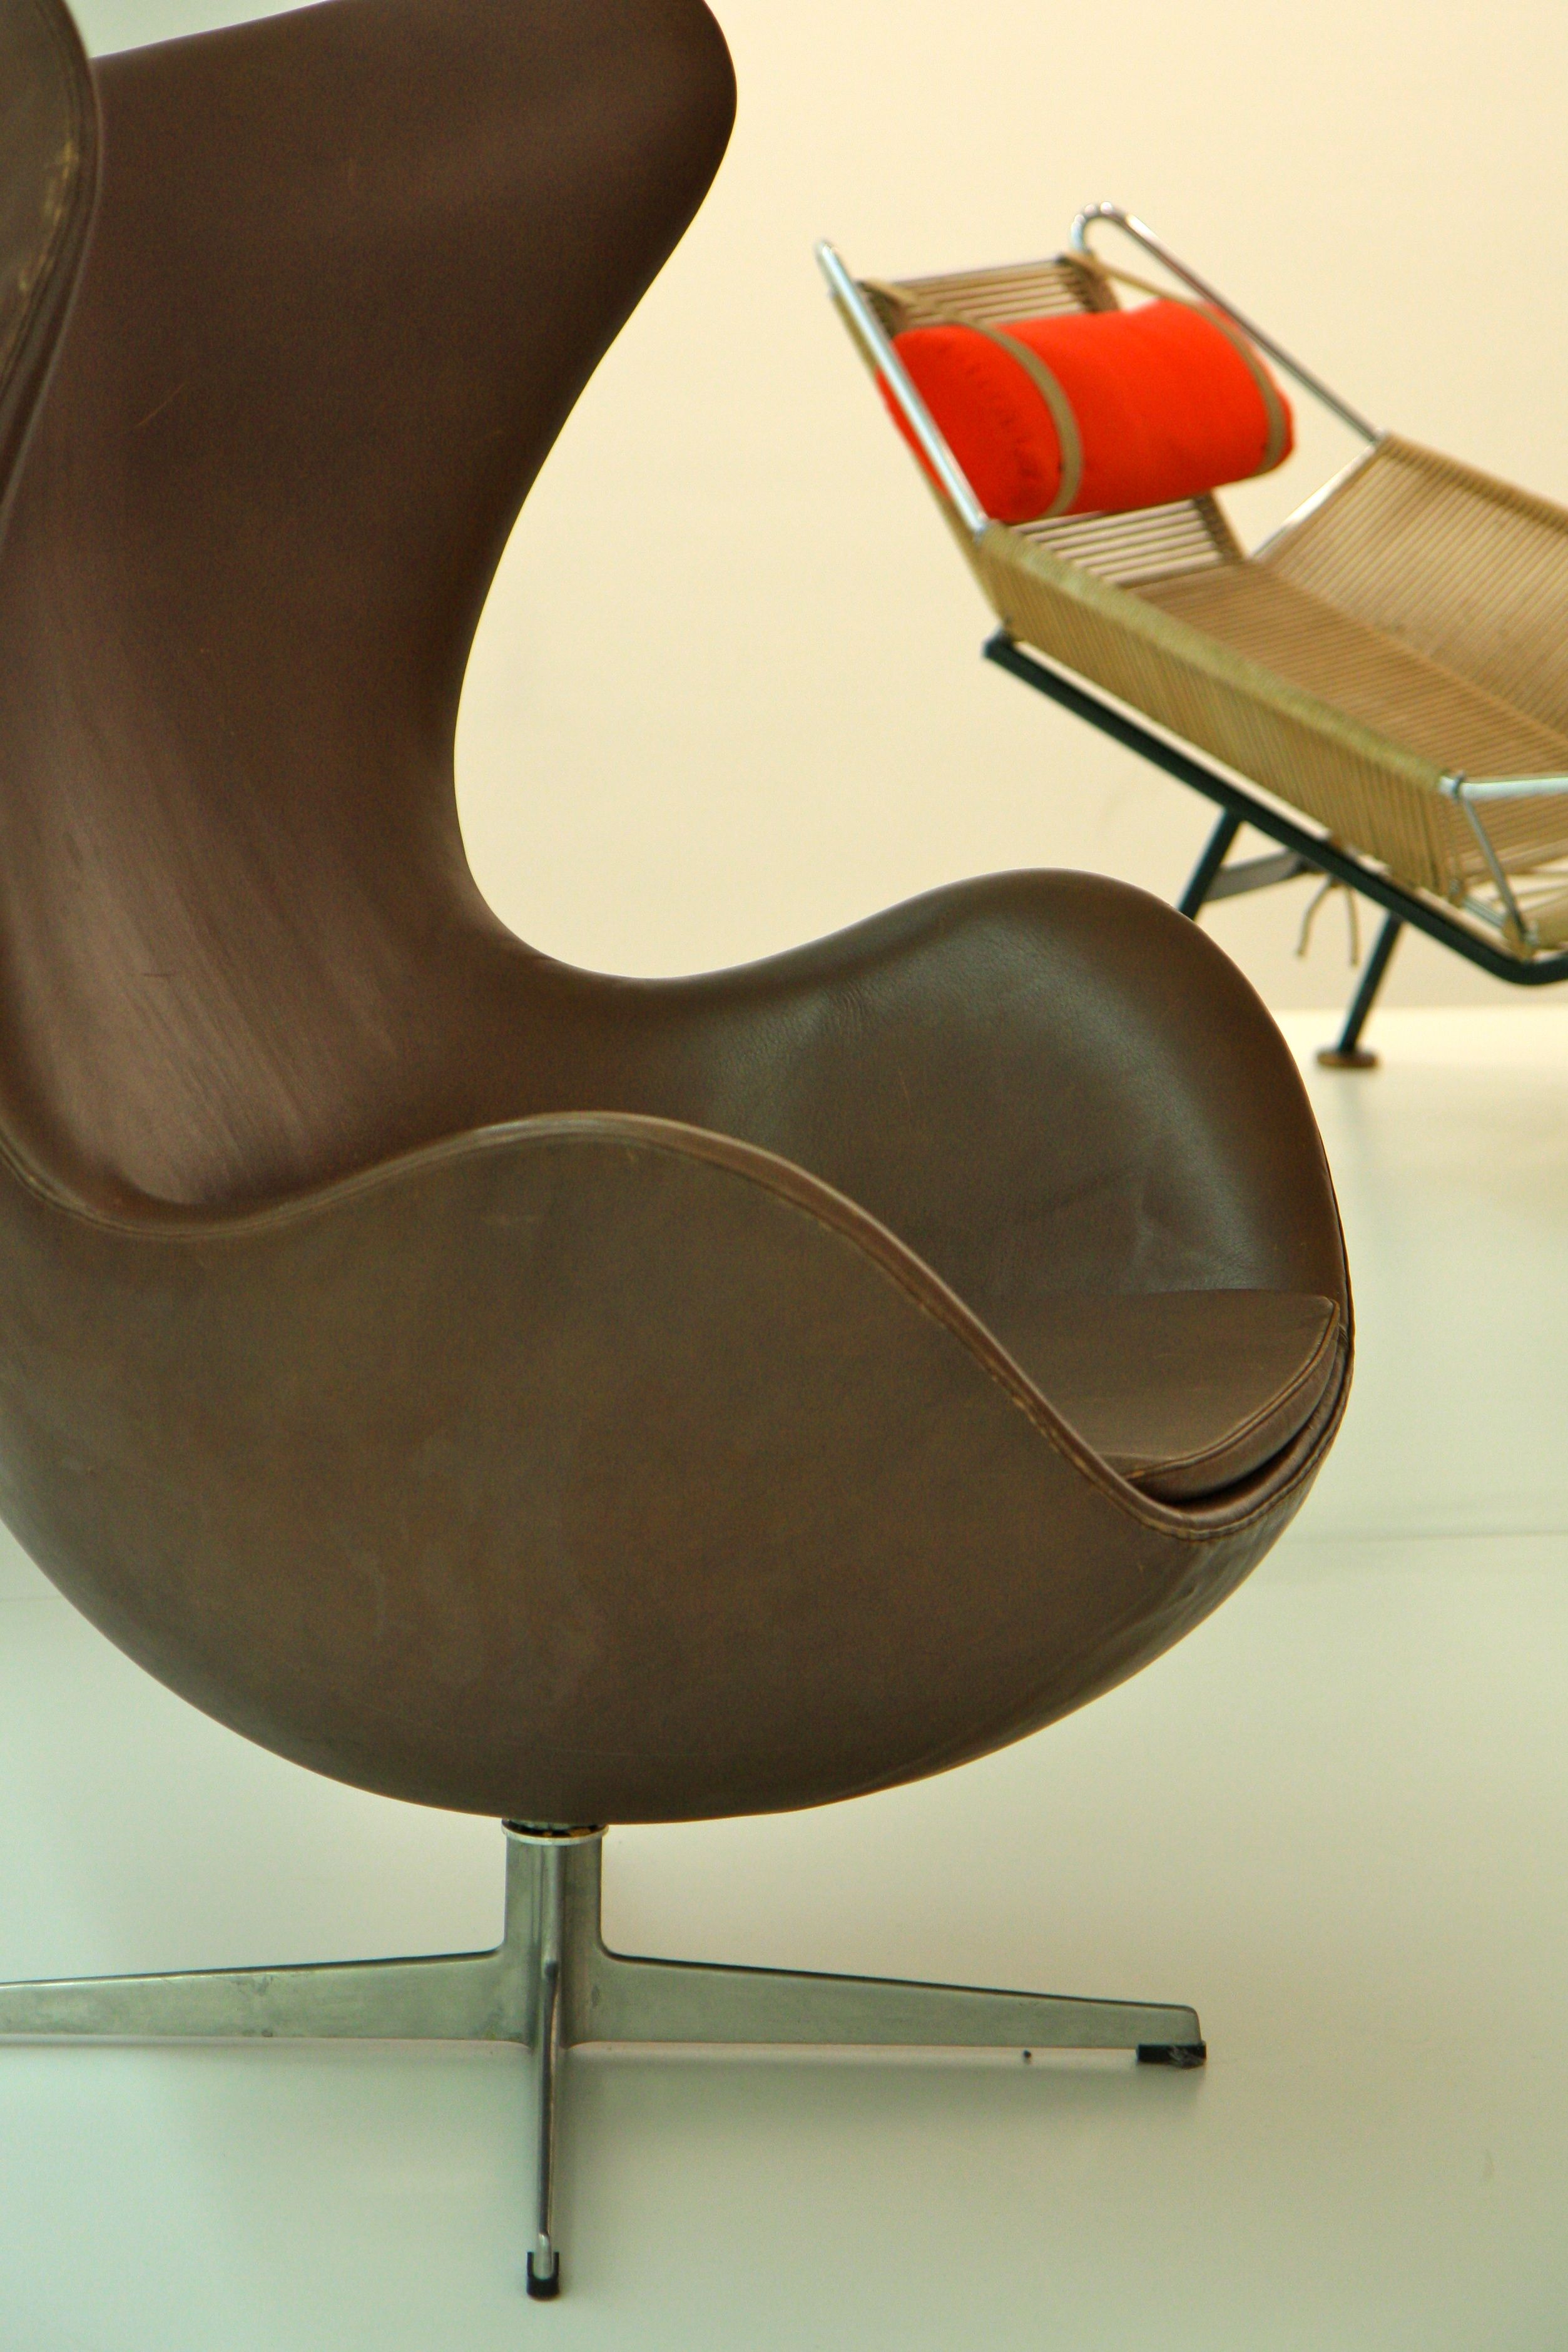 Arne Jacobsen Egg Chair and Hans Wagner Flag Halyard Chair at a